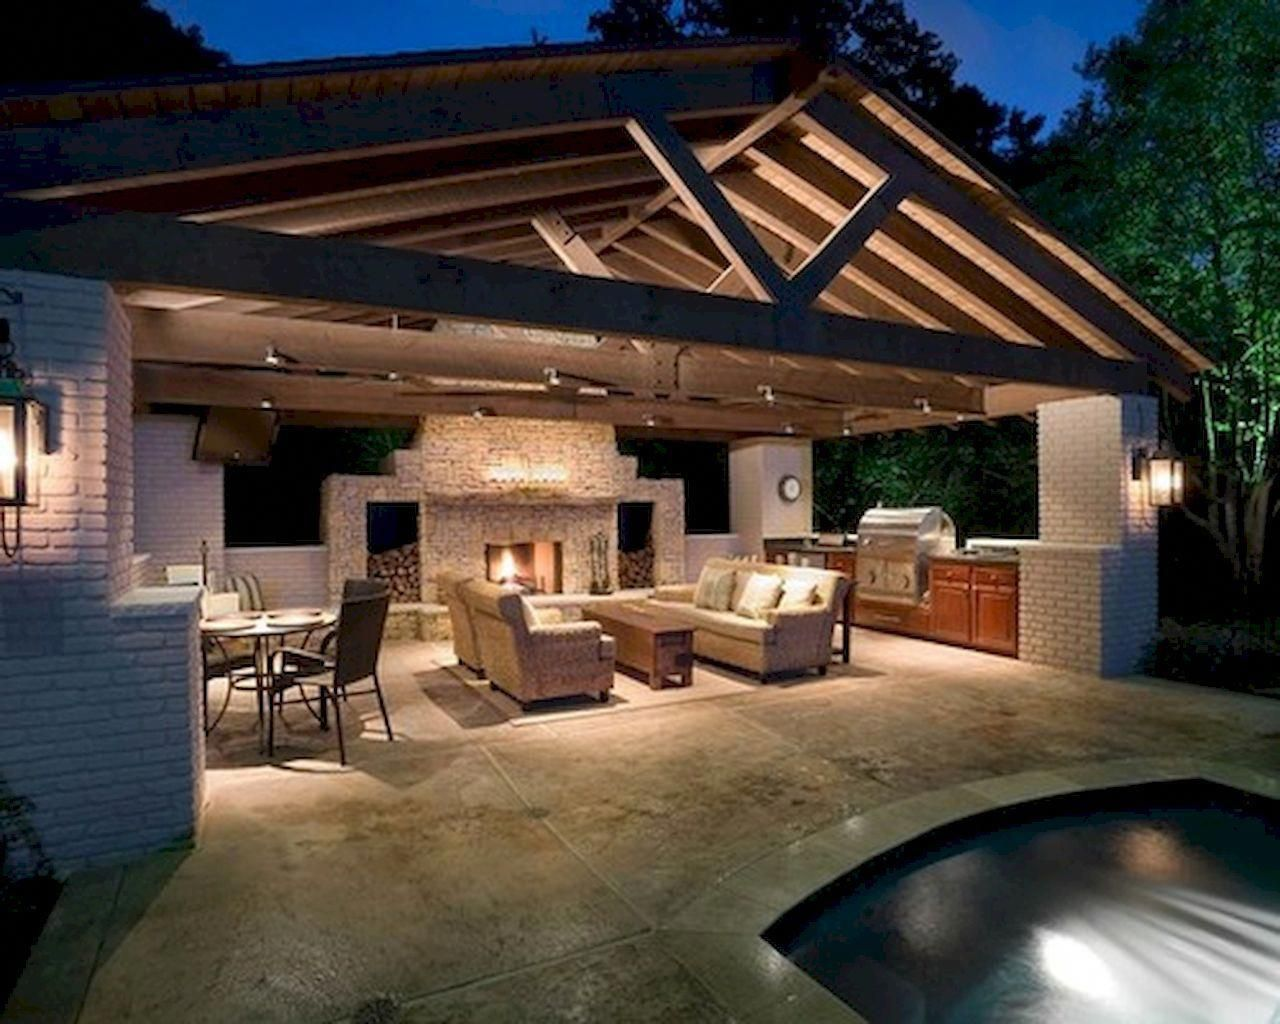 60 Awesome Outdoor Kitchens Ideas On A Budget Luxury Outdoor